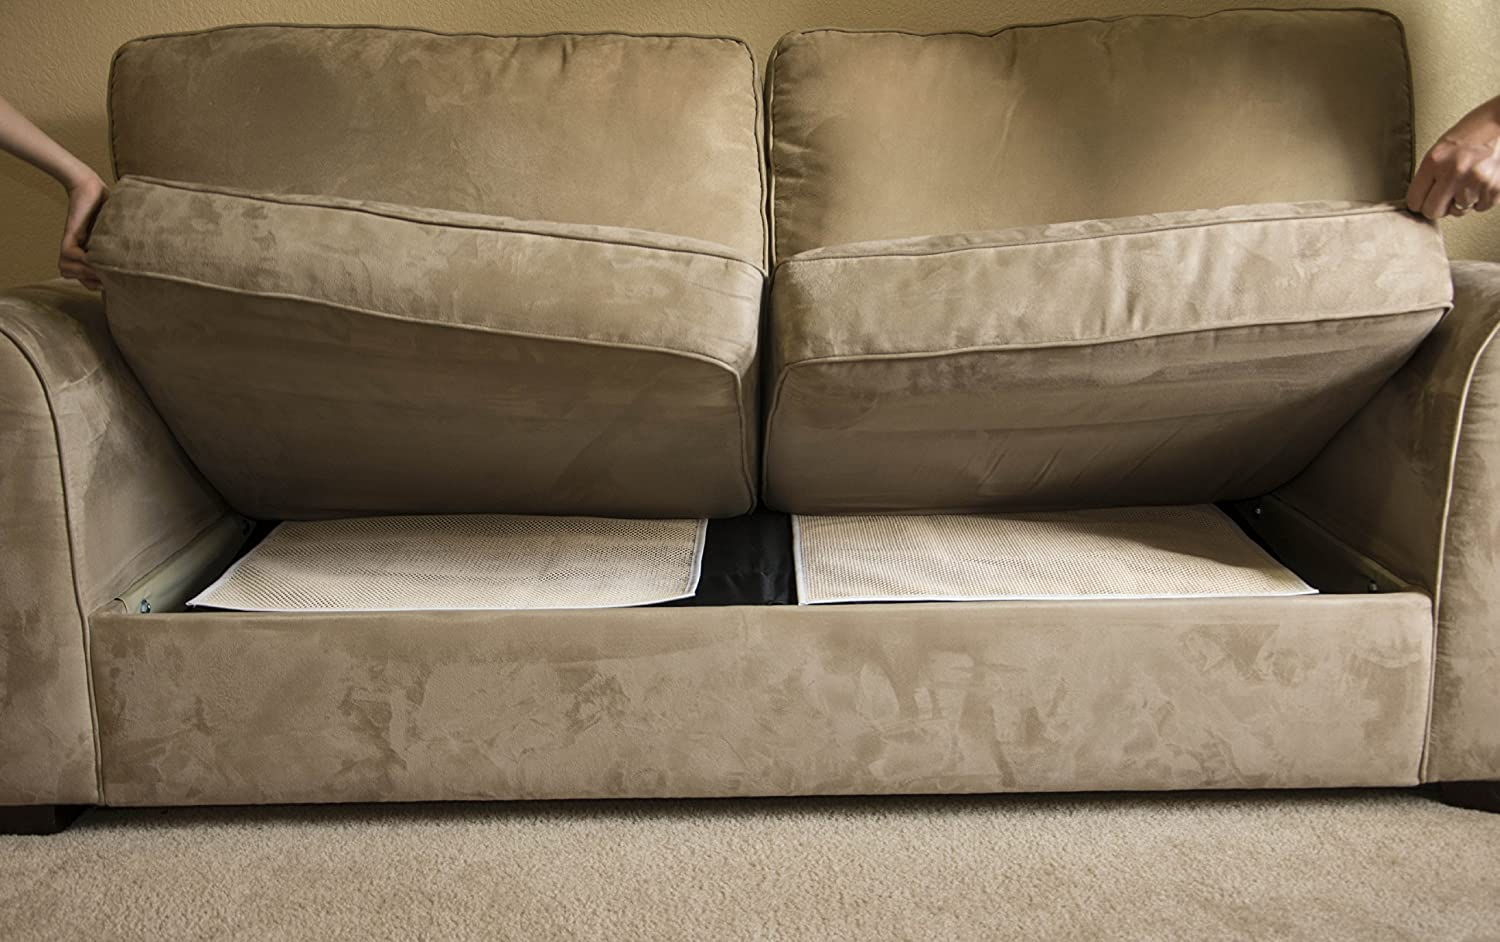 How To Stop Sofa Cushions From Sliding